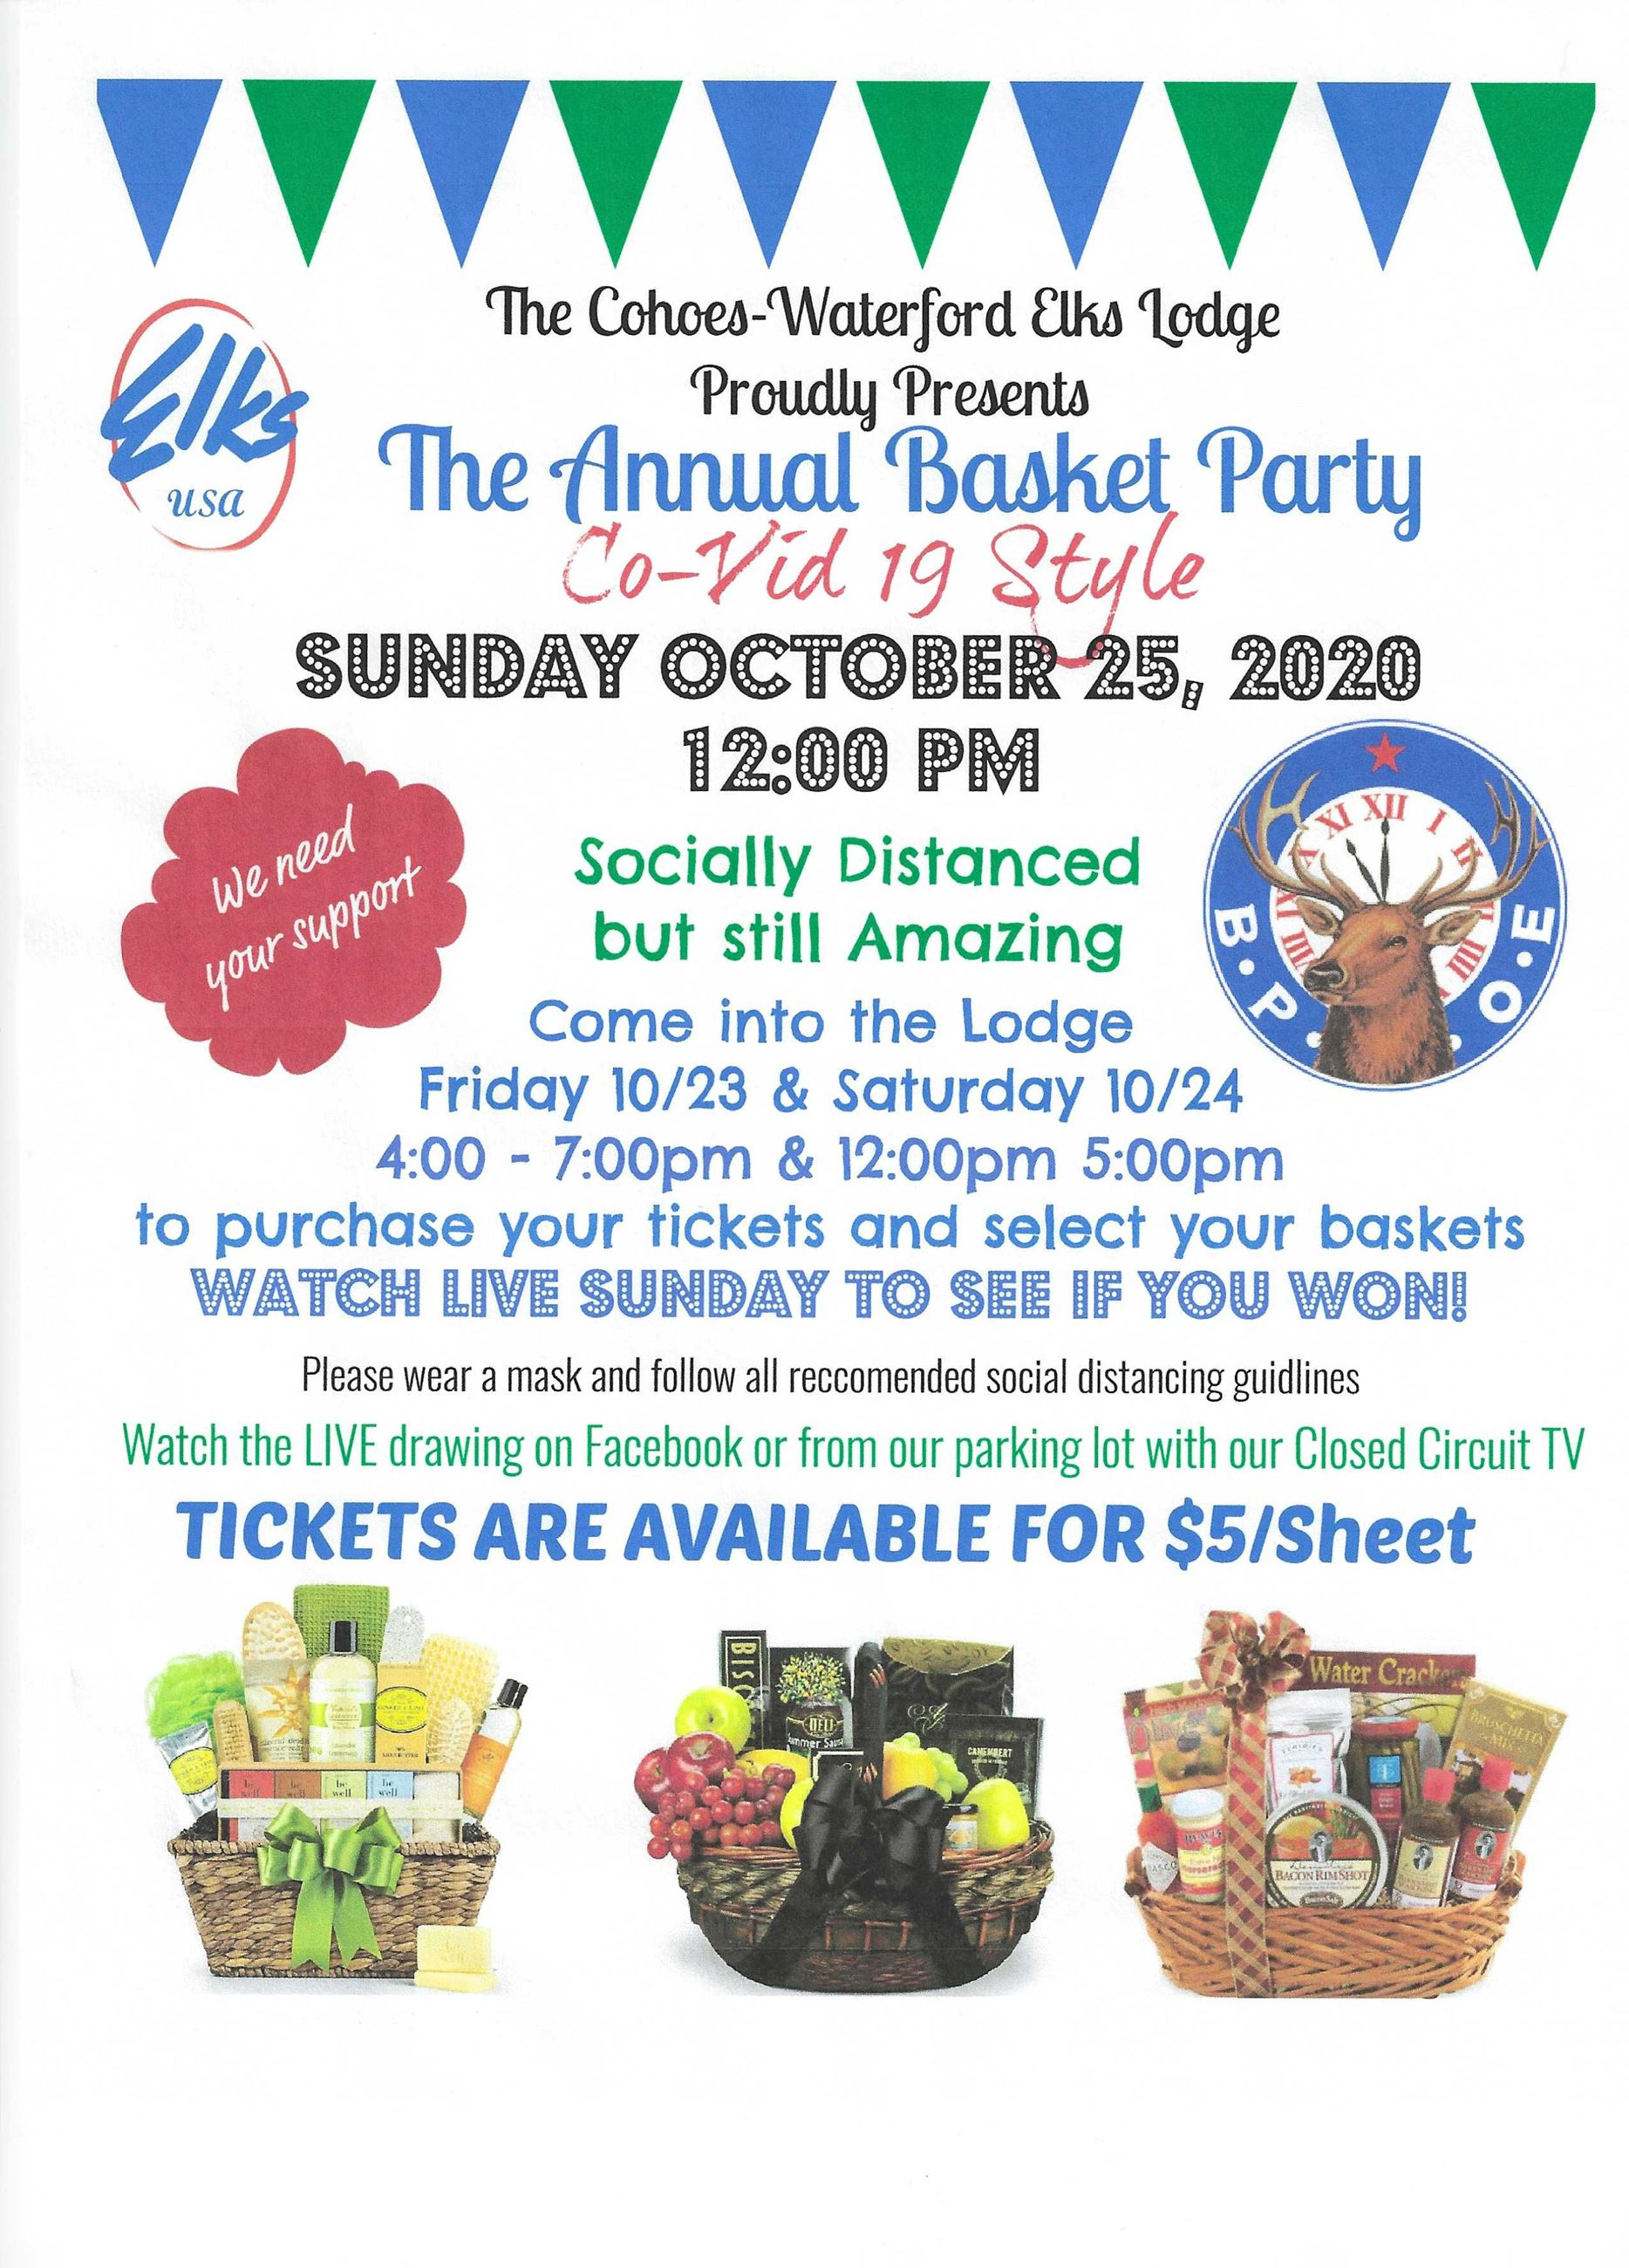 Basket Party Flyer 2020